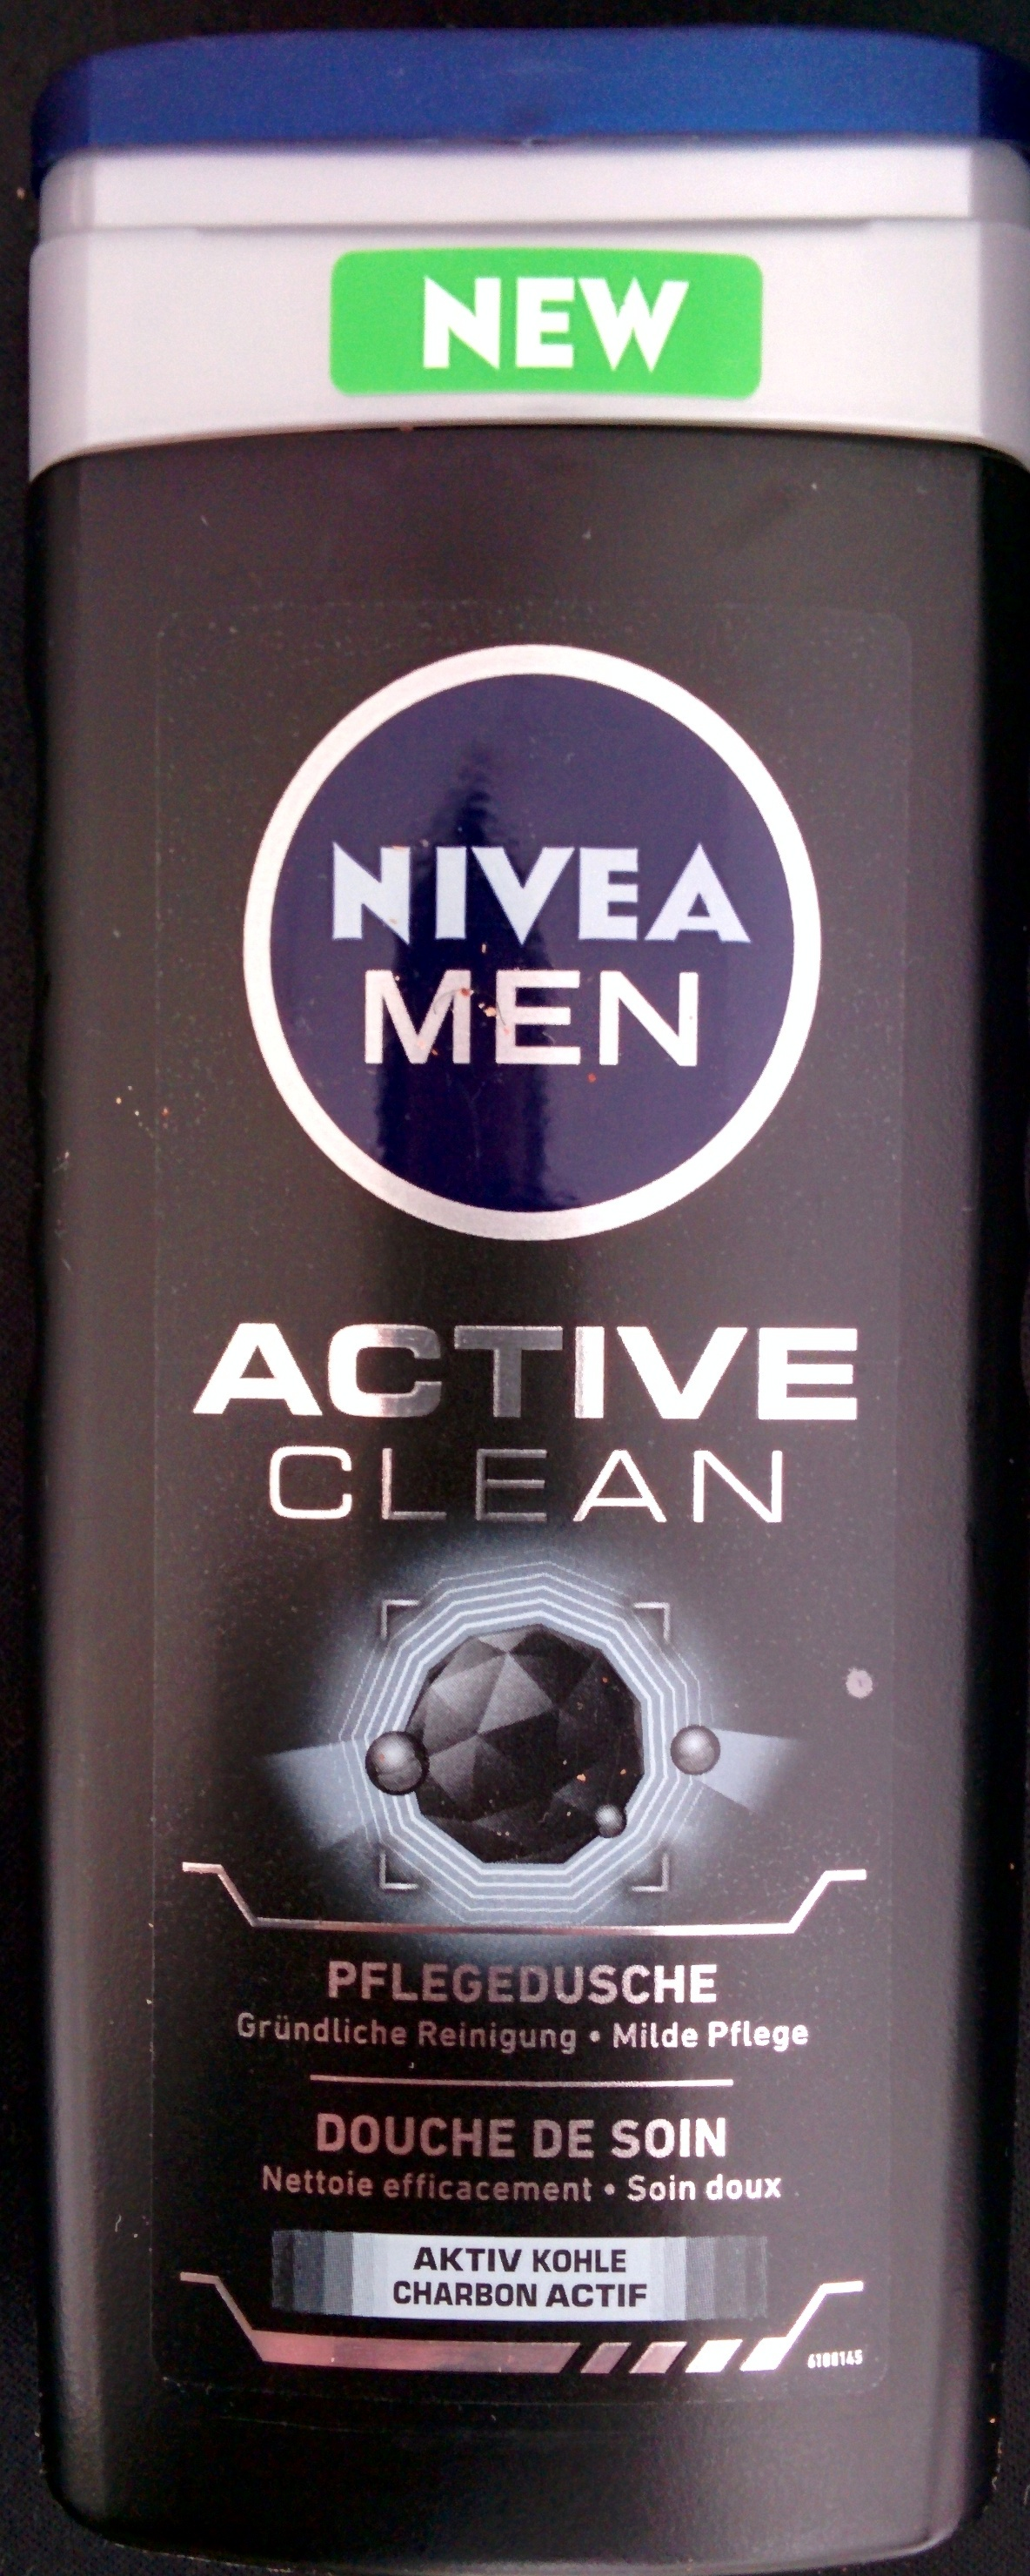 Active Clean - Product - de